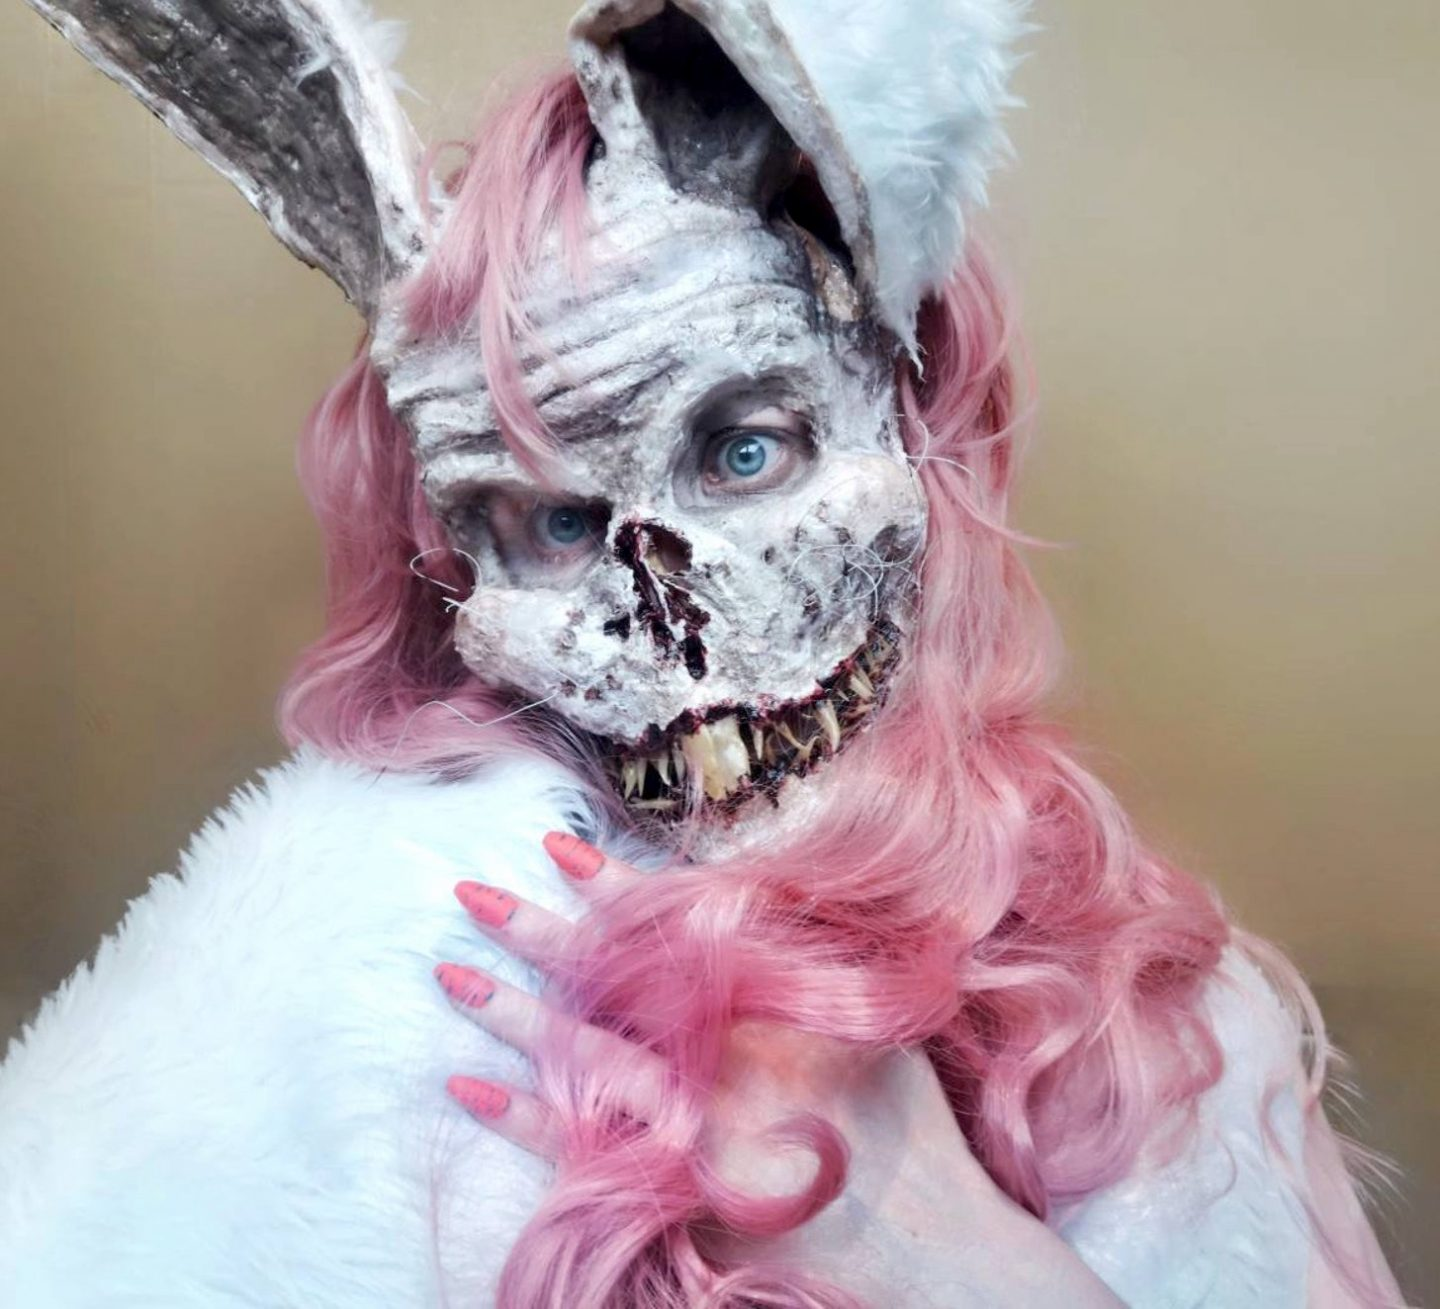 Evil scary bunny mask for Halloween